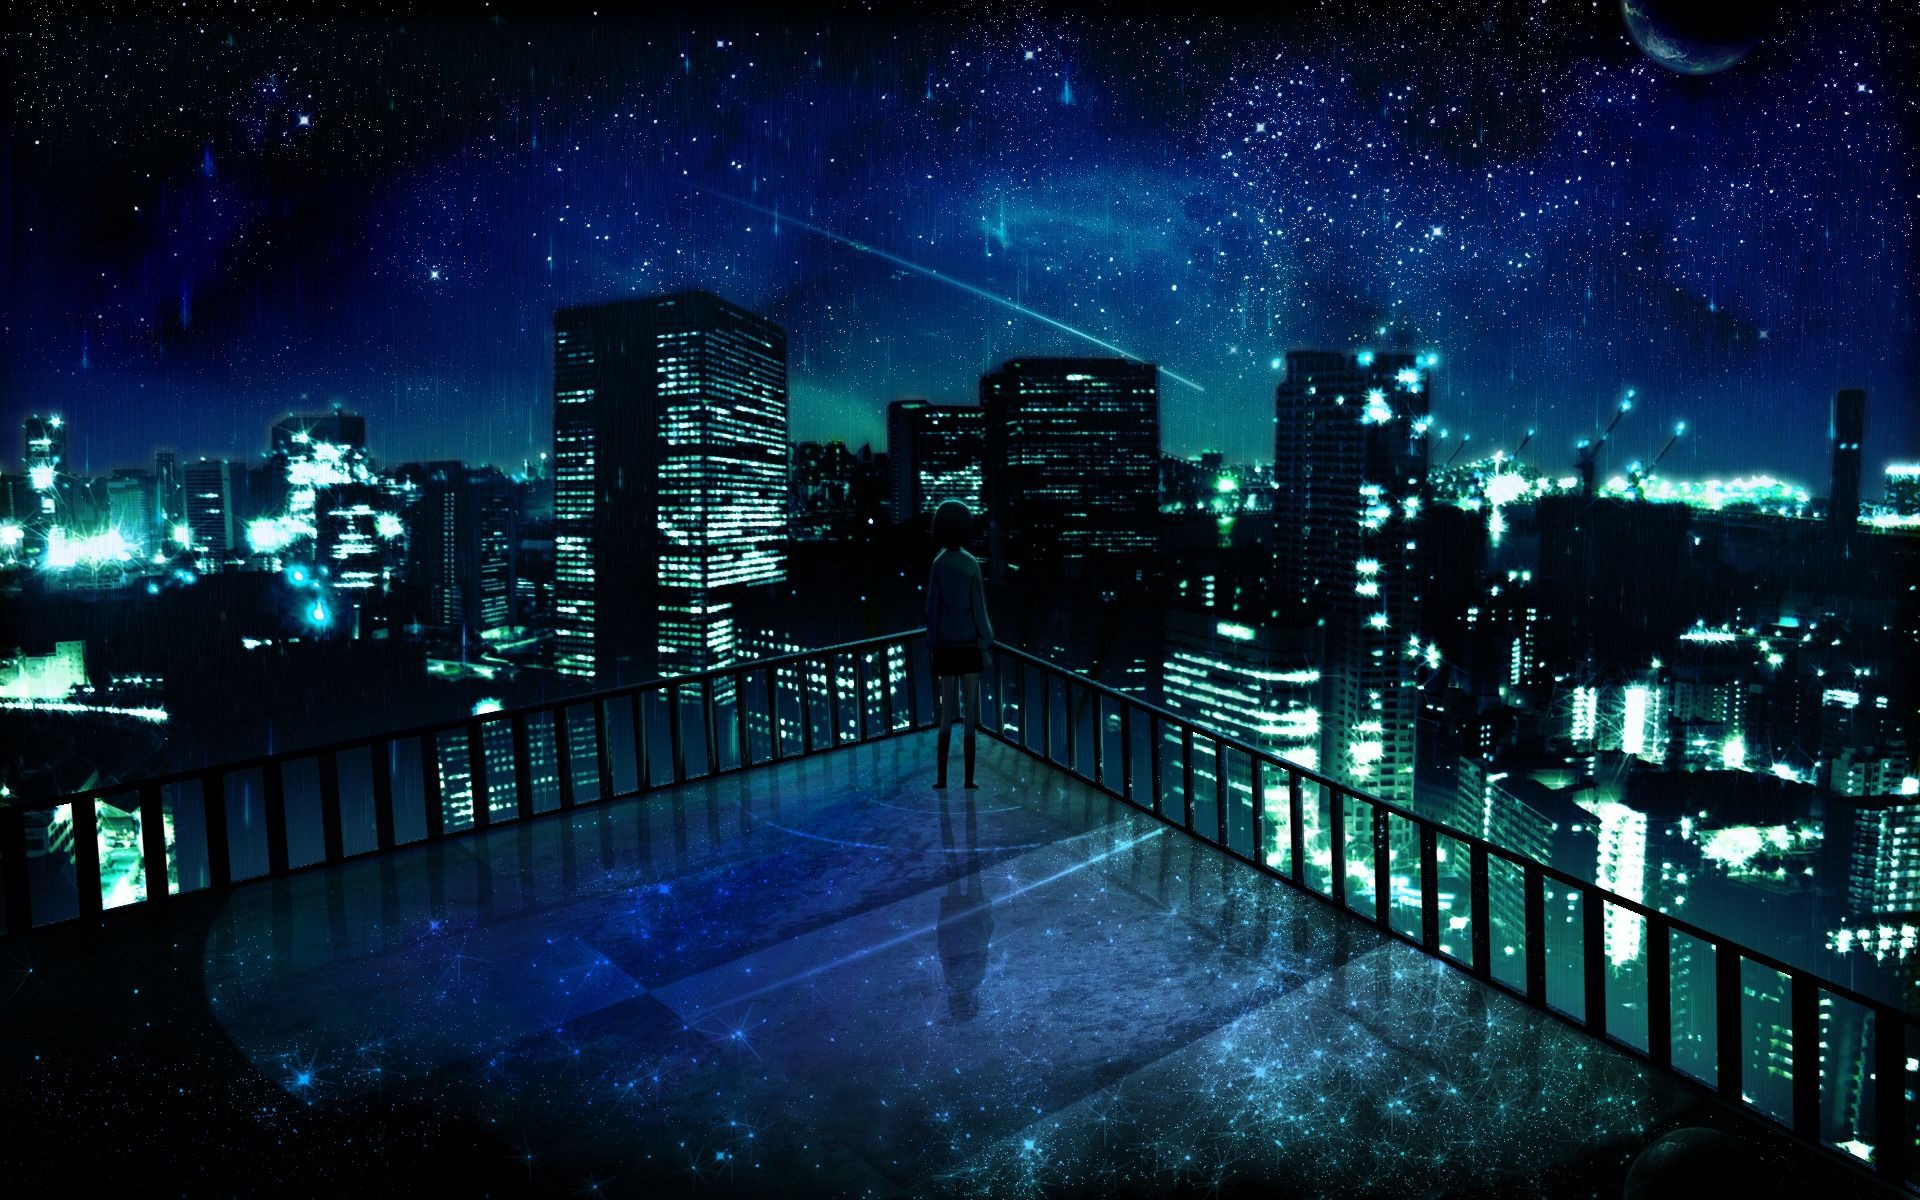 Blue Anime Wallpapers Hd Wallpapers Backgrounds Of Your Choice Anime City Anime Scenery Wallpaper Anime Galaxy